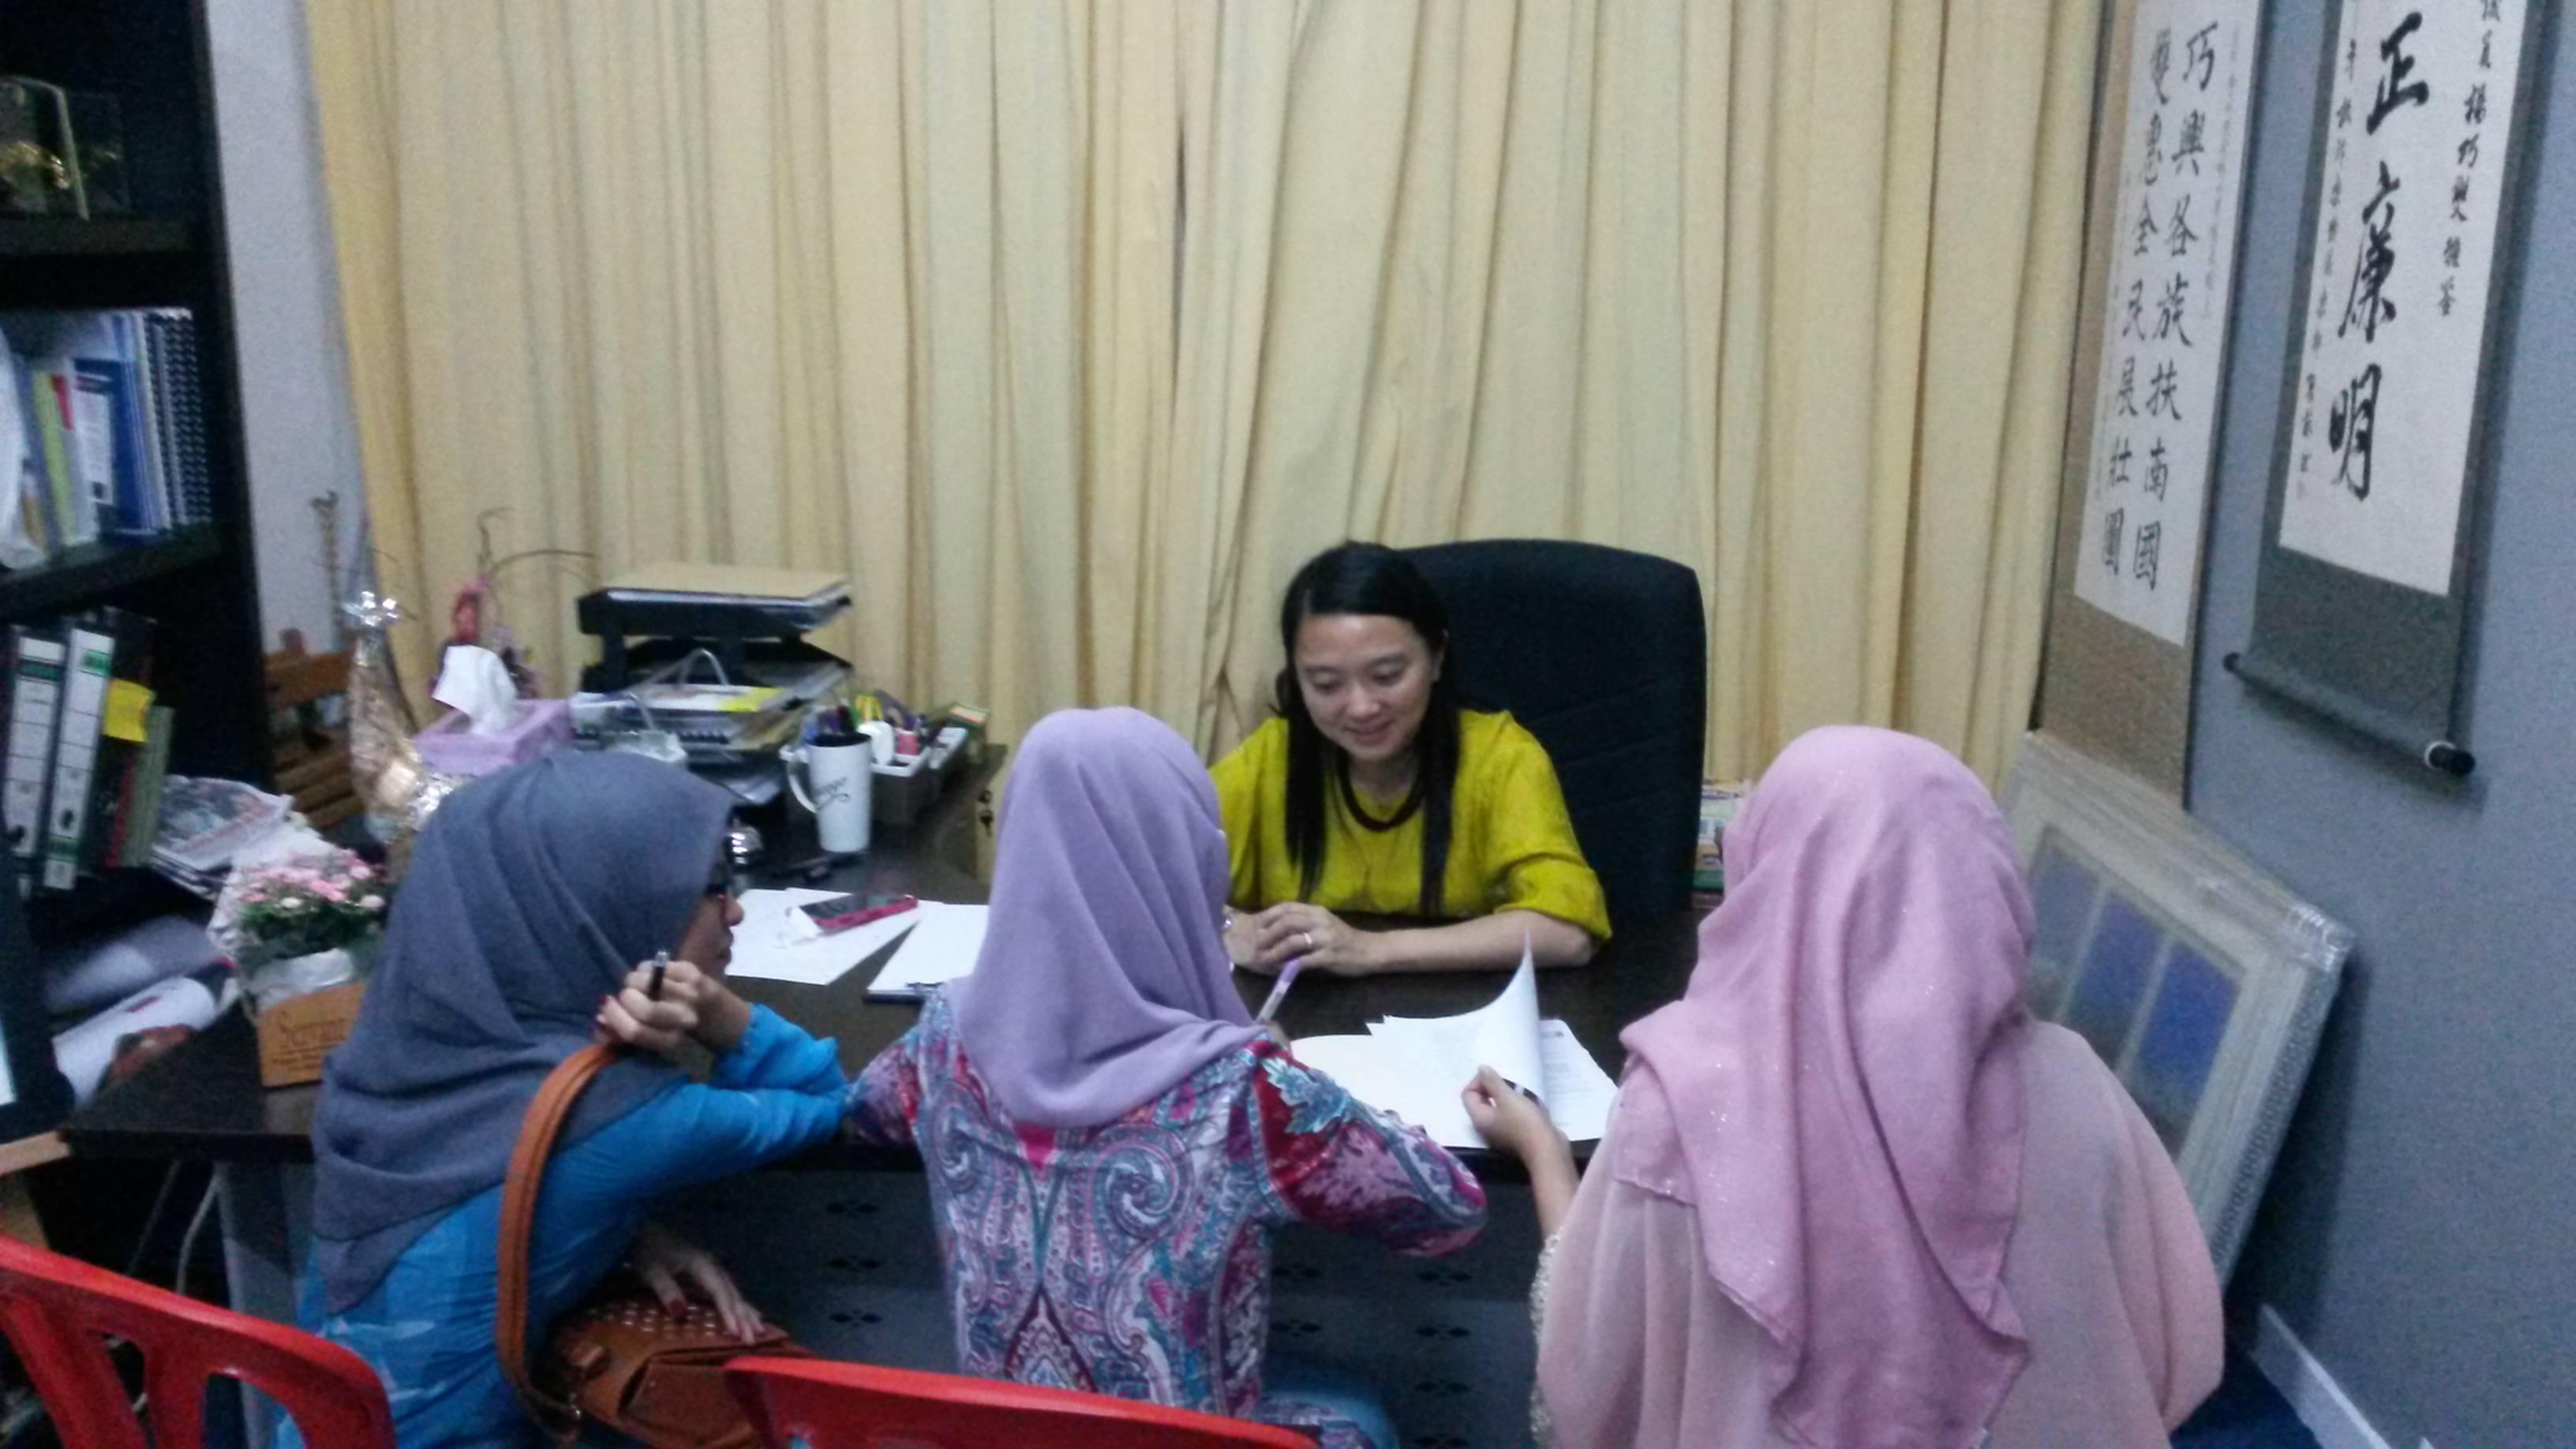 Students from local universities interviewing YB Hannah Yeoh